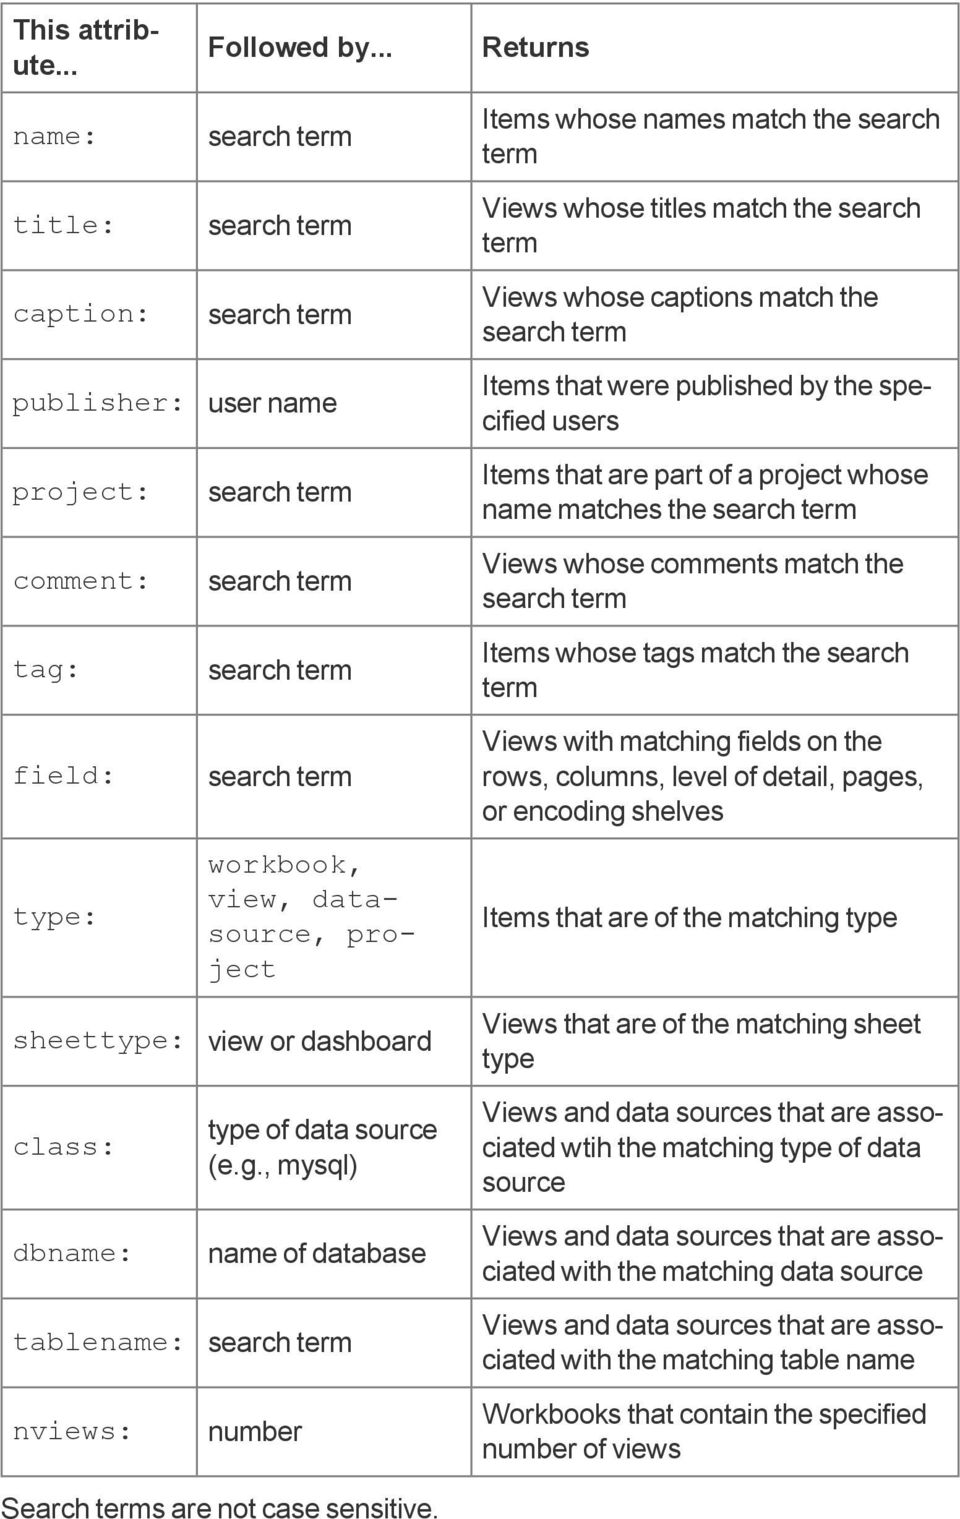 , mysql) name of database search term number Returns Items whose names match the search term Views whose titles match the search term Views whose captions match the search term Items that were